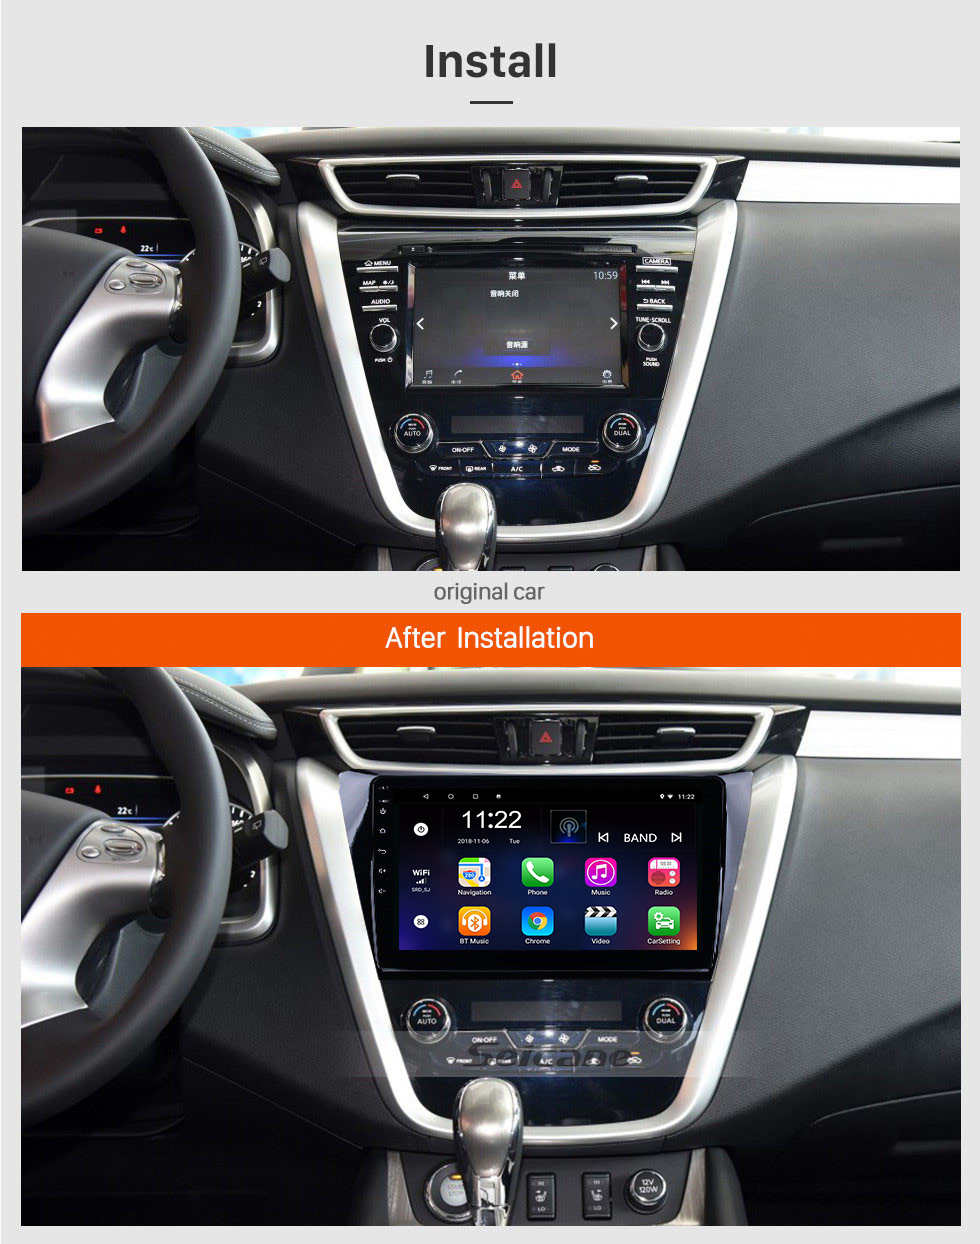 Seicane 10.1 inch HD 1024*600 Touchscreen 2015 2016 2017 Nissan Murano Android 8.1 GPS Navigation System With OBDII Rear Camera AUX Steering Wheel Control USB 1080P 3G WiFi Capacitive Mirror Link TPMS DVR Bluetooth